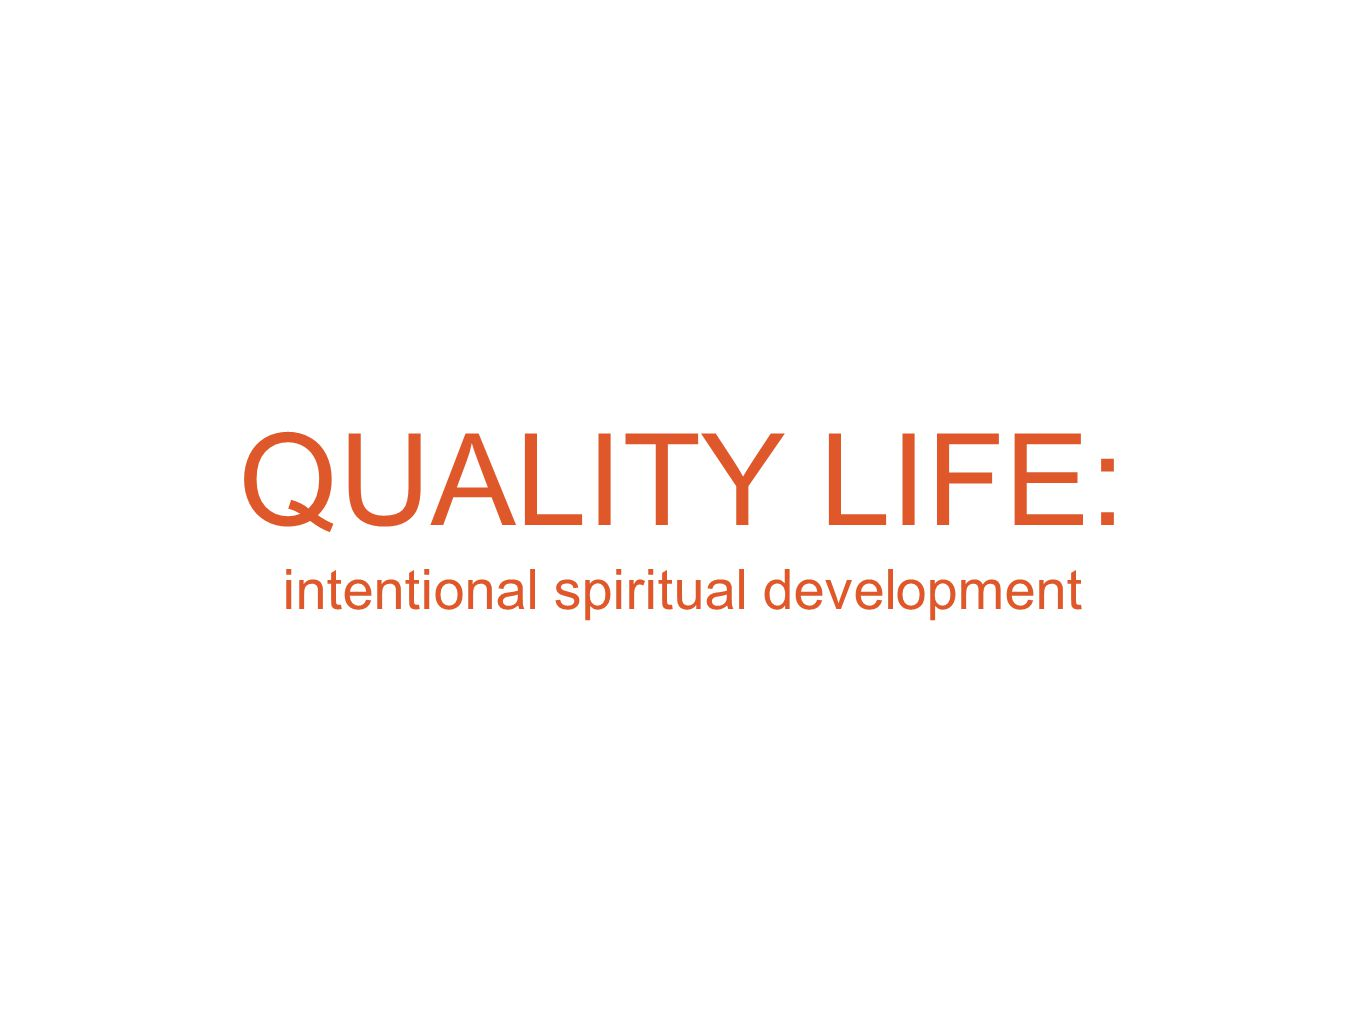 QUALITY LIFE: intentional spiritual development